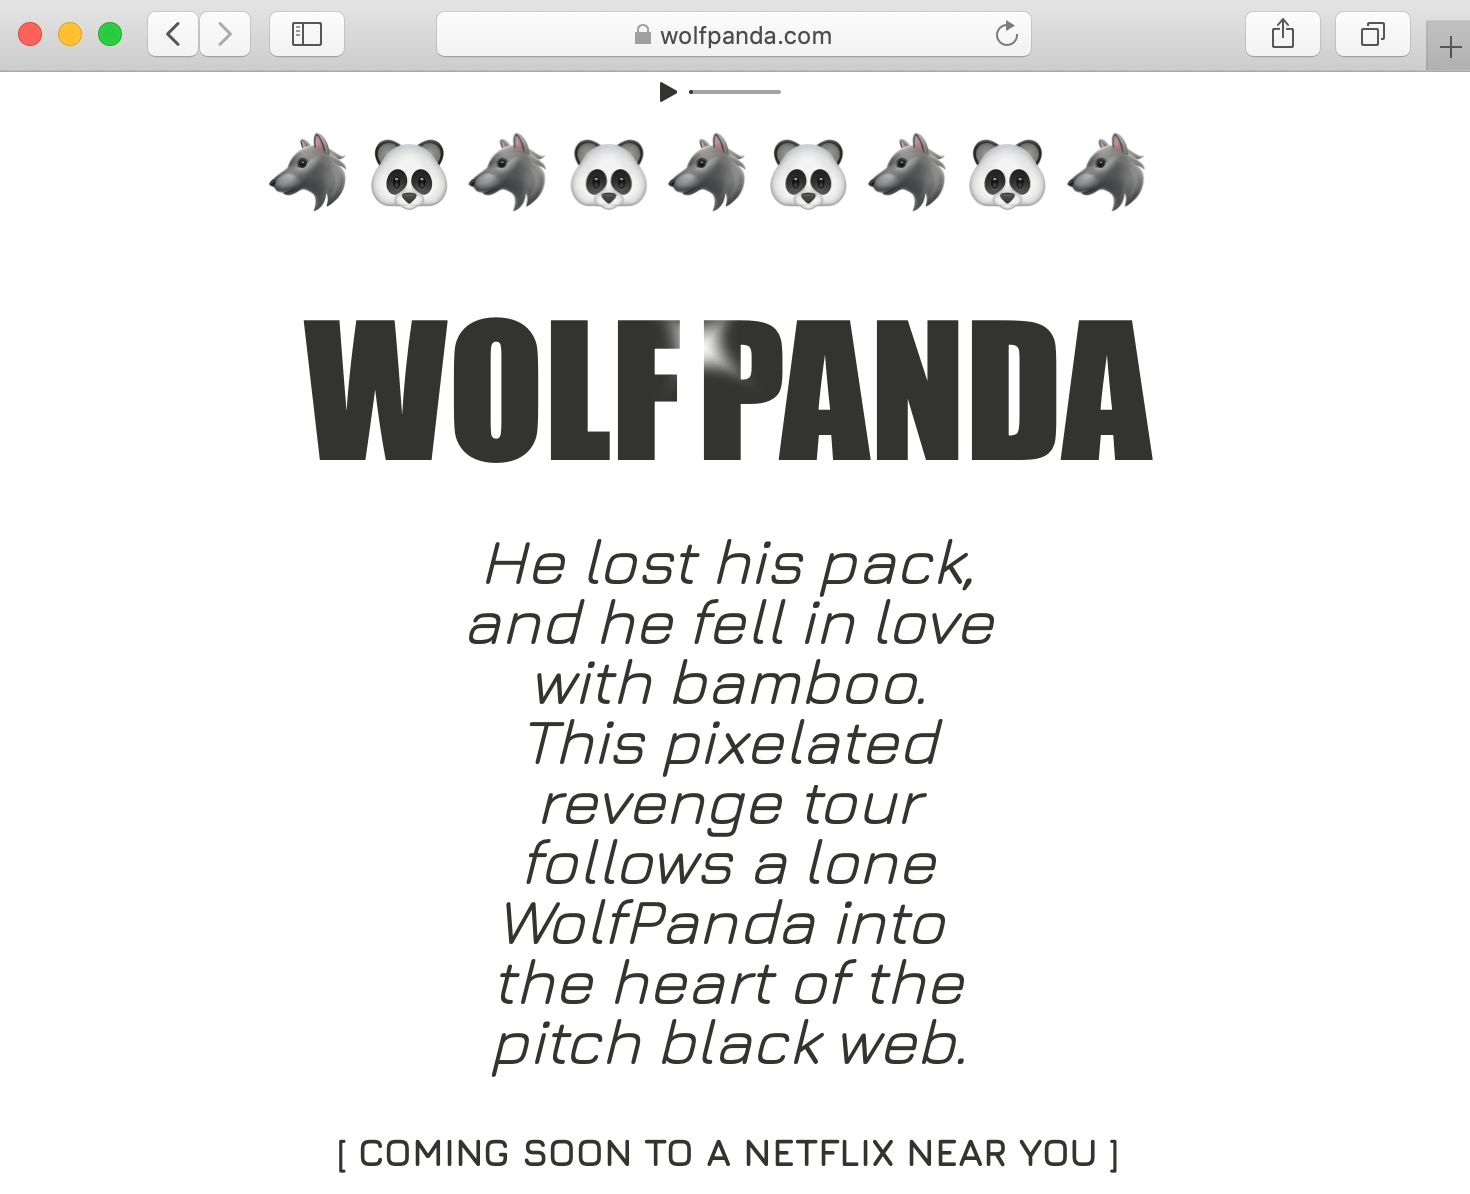 /wolfpanda-he-lost-his-pack-and-fell-in-love-with-bamboo-l44y35zz feature image